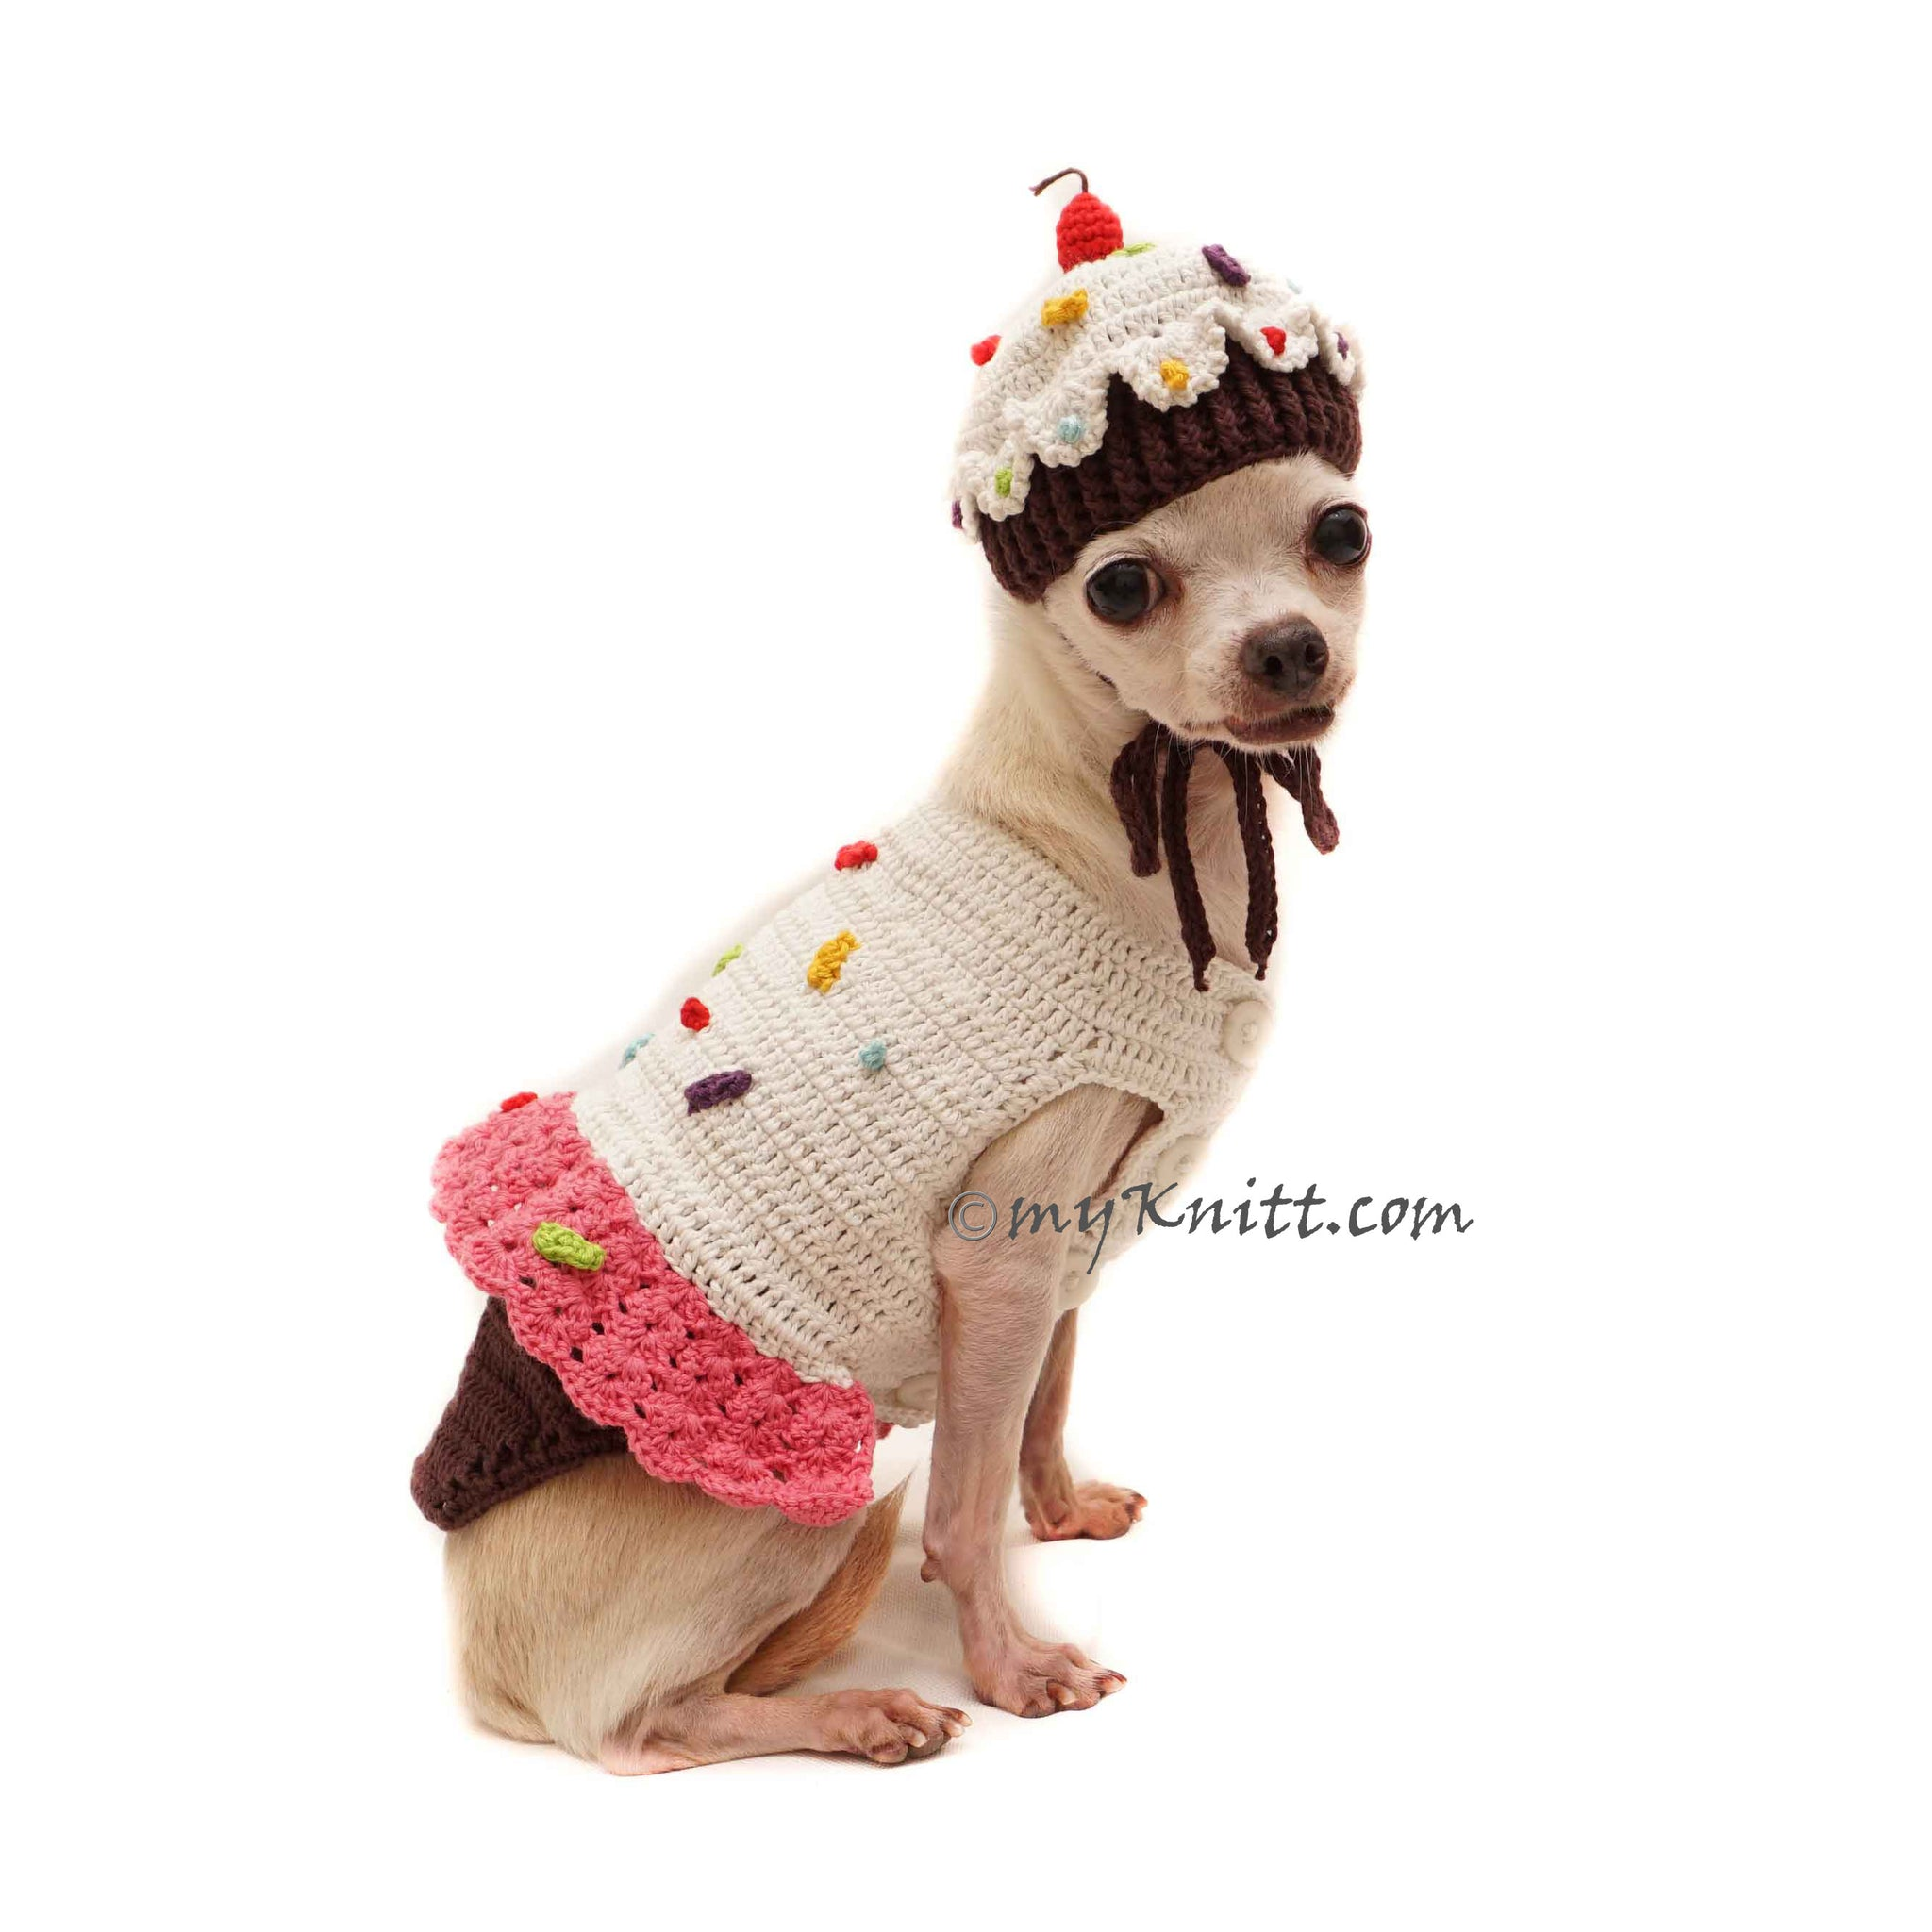 Free Shipping Cupcake Dog Hat Crochet Chihuahua Clothes DF162 by Myknitt Birthday Pet Costume Cupcake Dog Costume Crochet